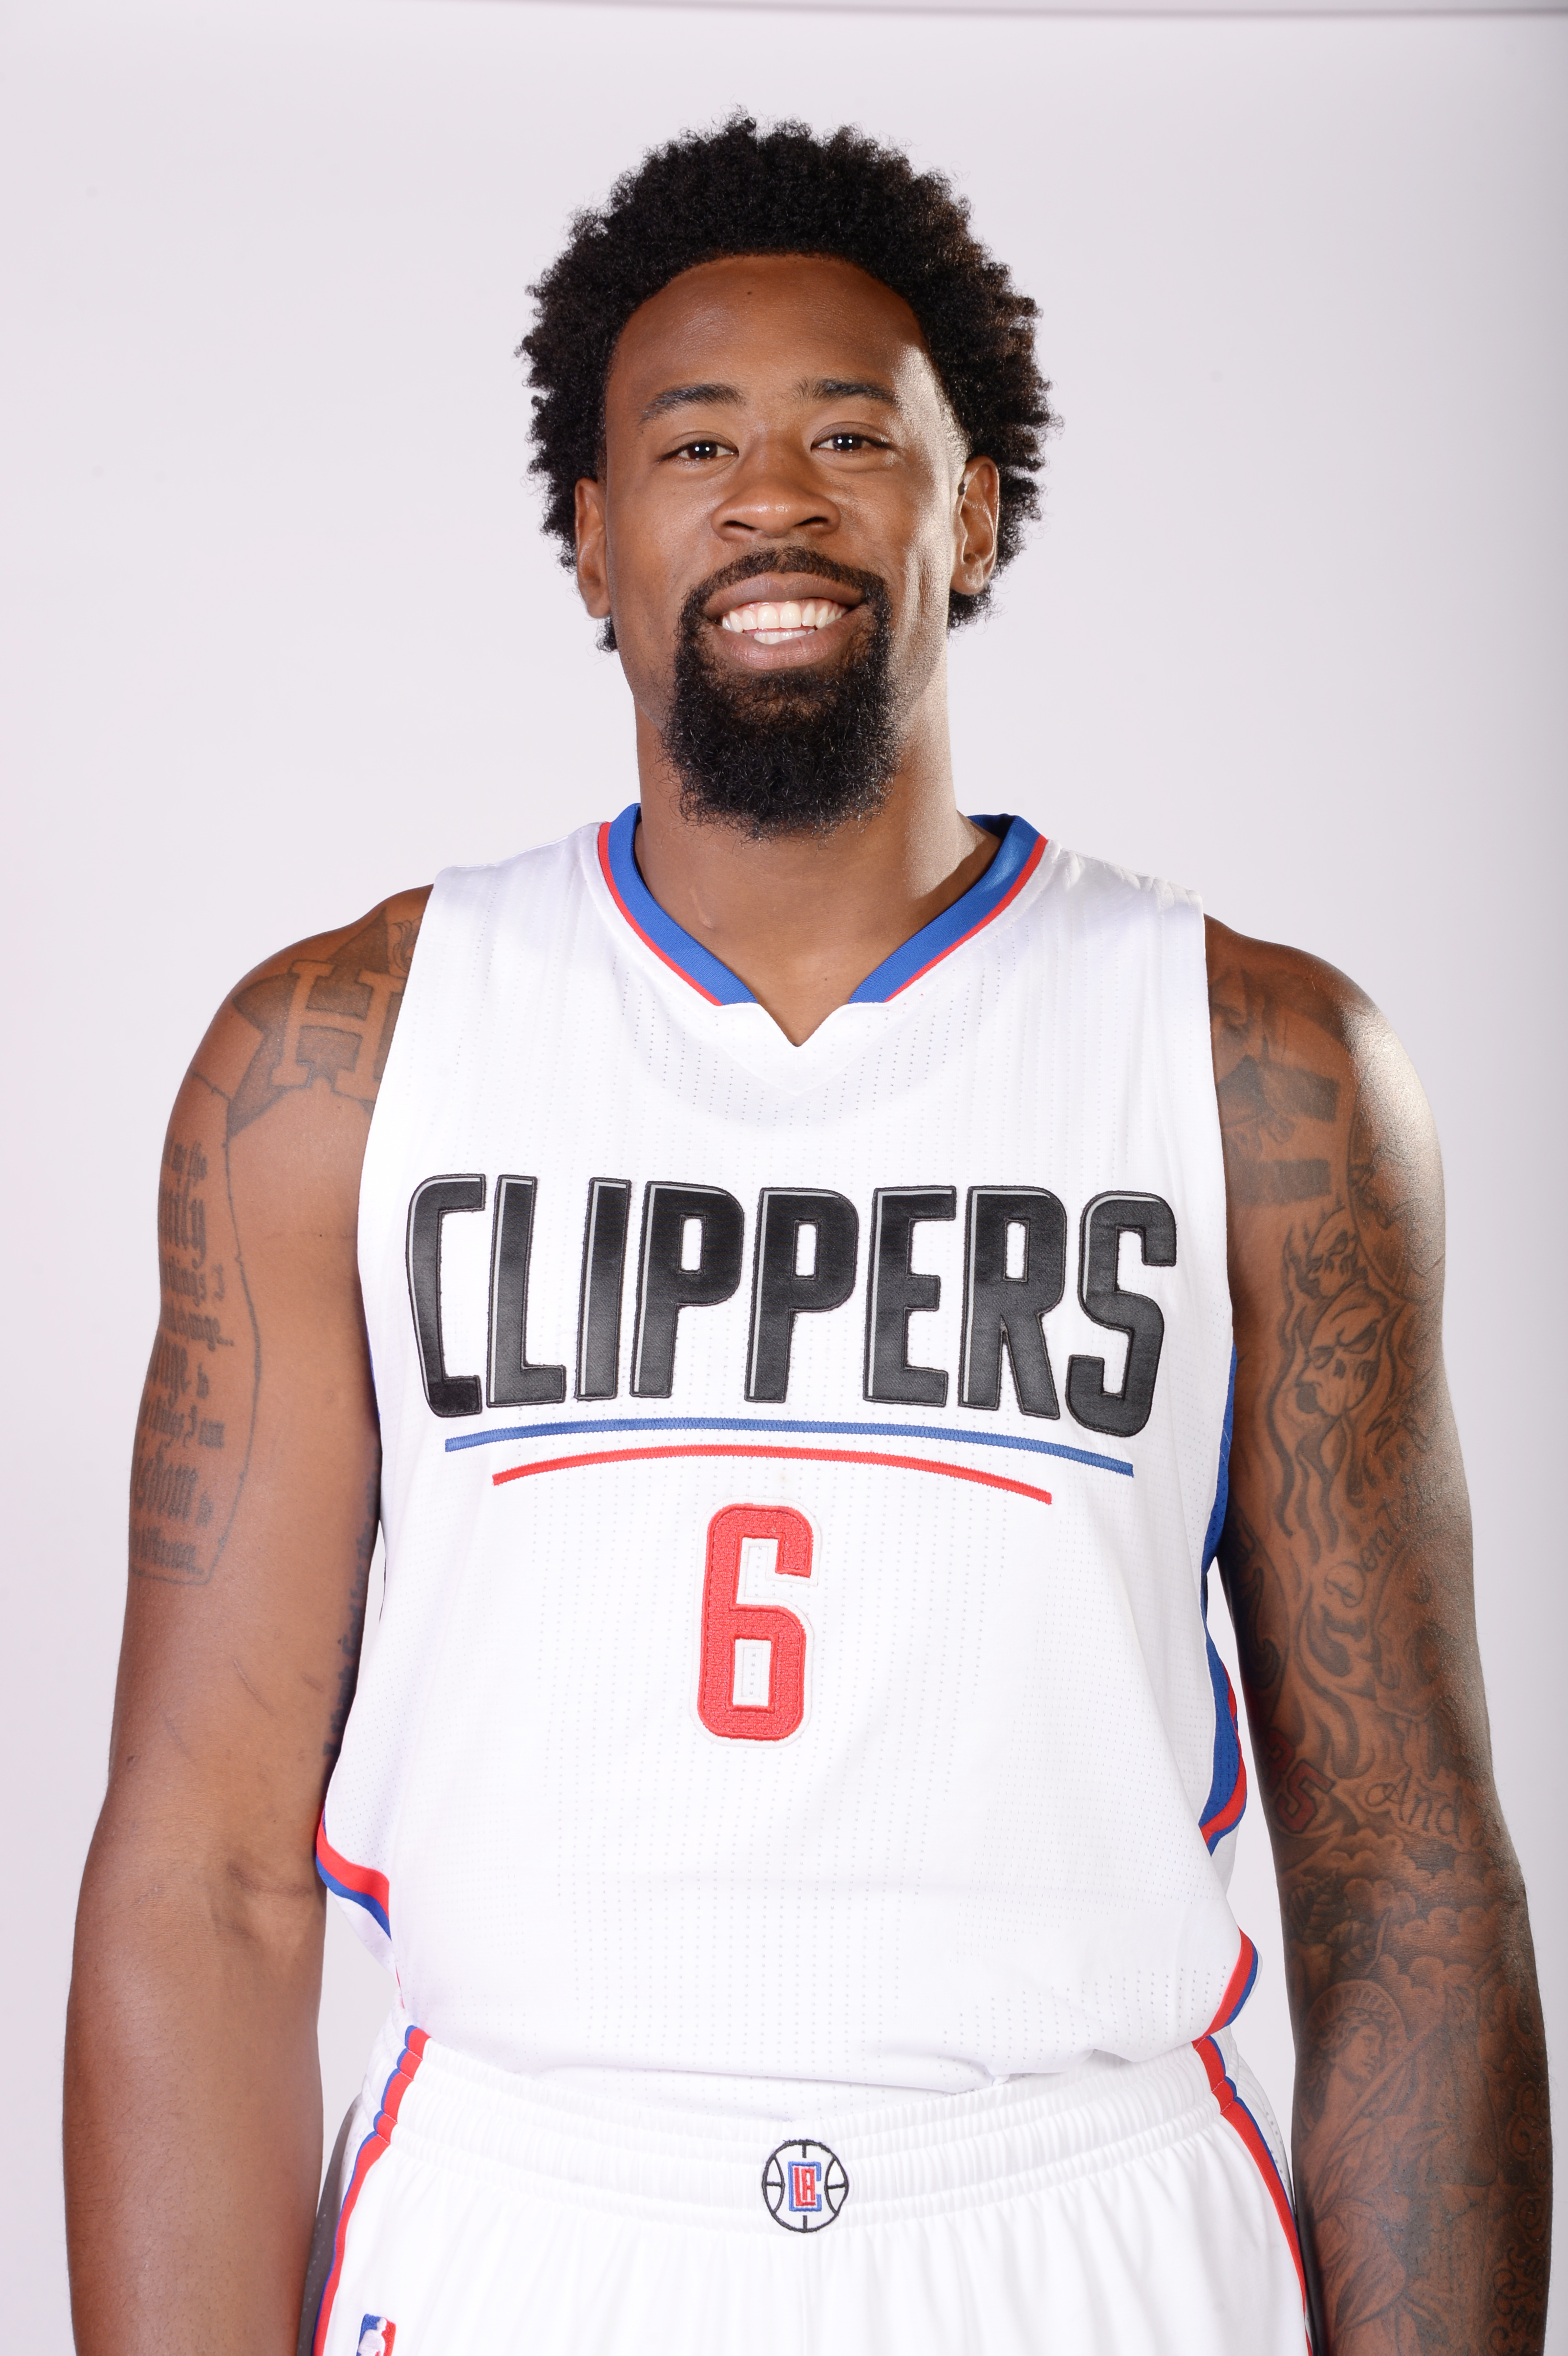 LOS ANGELES, CA - JULY 21: DeAndre Jordan #6 of the Los Angeles Clippers poses for a portrait at STAPLES Center on July 21, 2015 in Los Angeles, California. (Photo by Andrew D. Bernstein/NBAE via Getty Images)